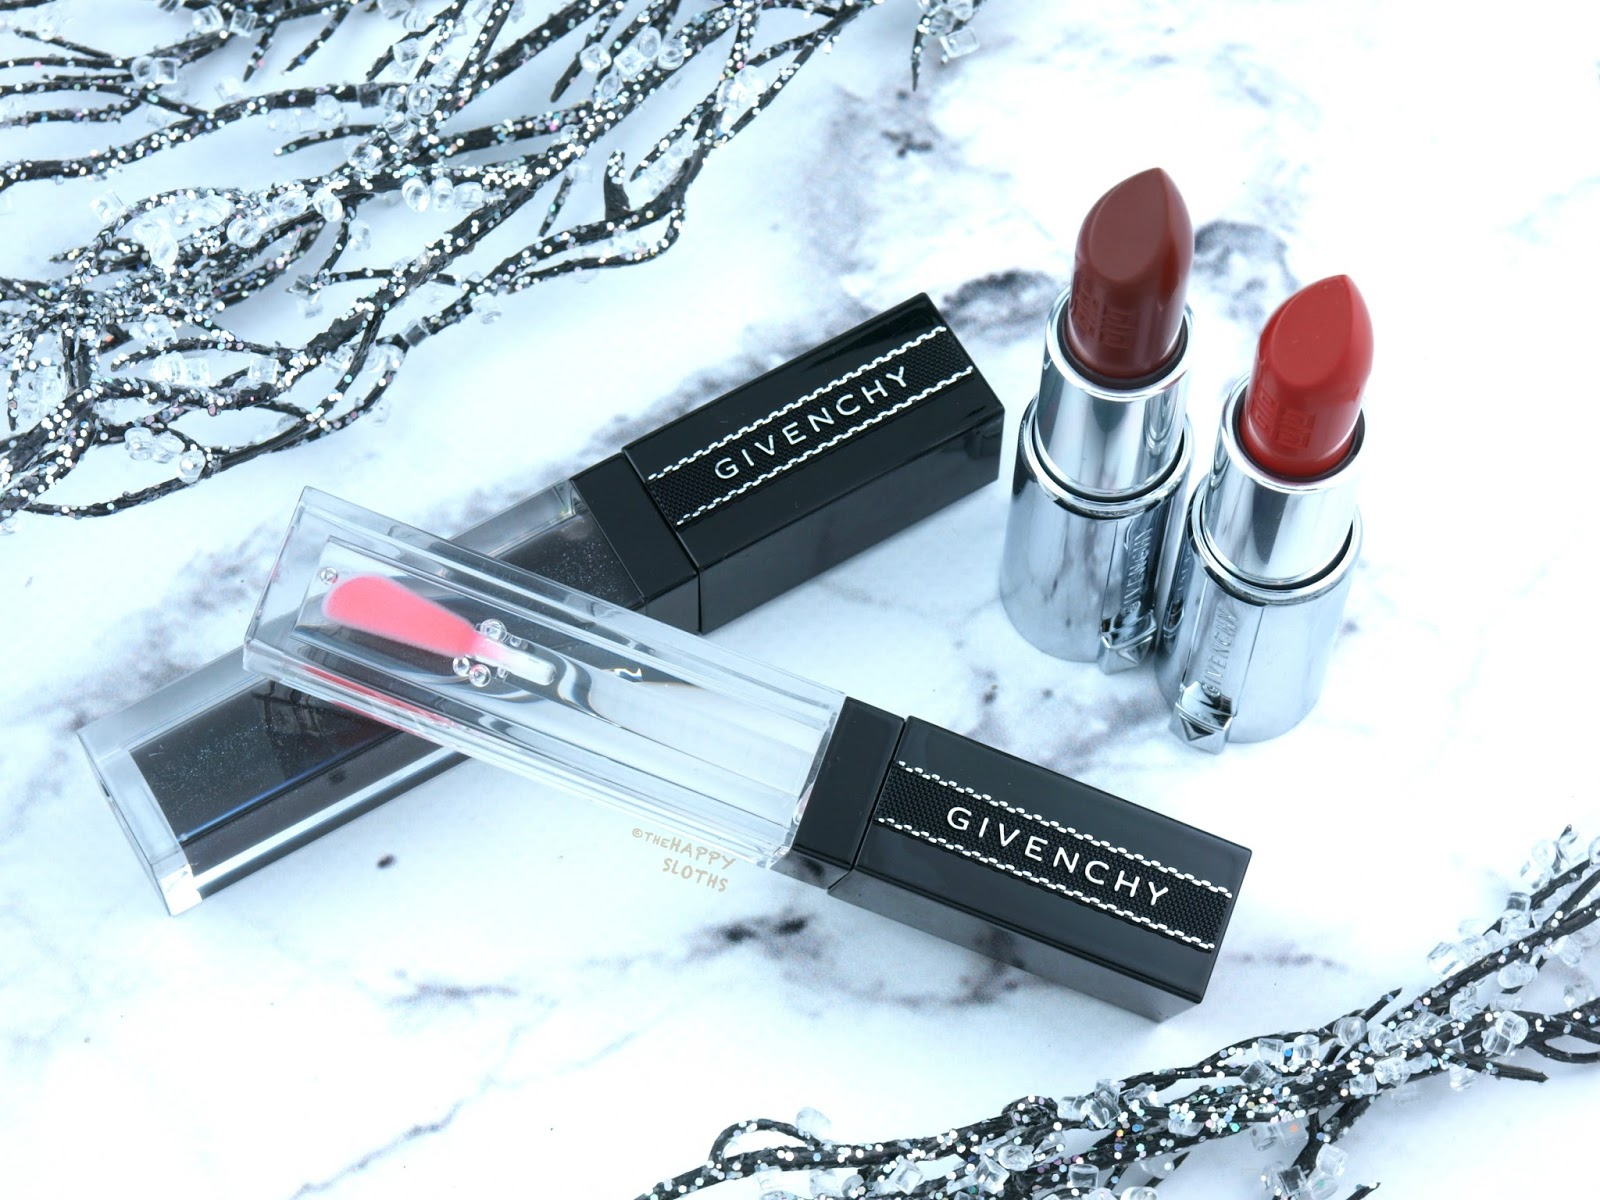 Givenchy | Le Rouge Mat Lipstick & Gloss Interdit Vinyl: Review and Swatches